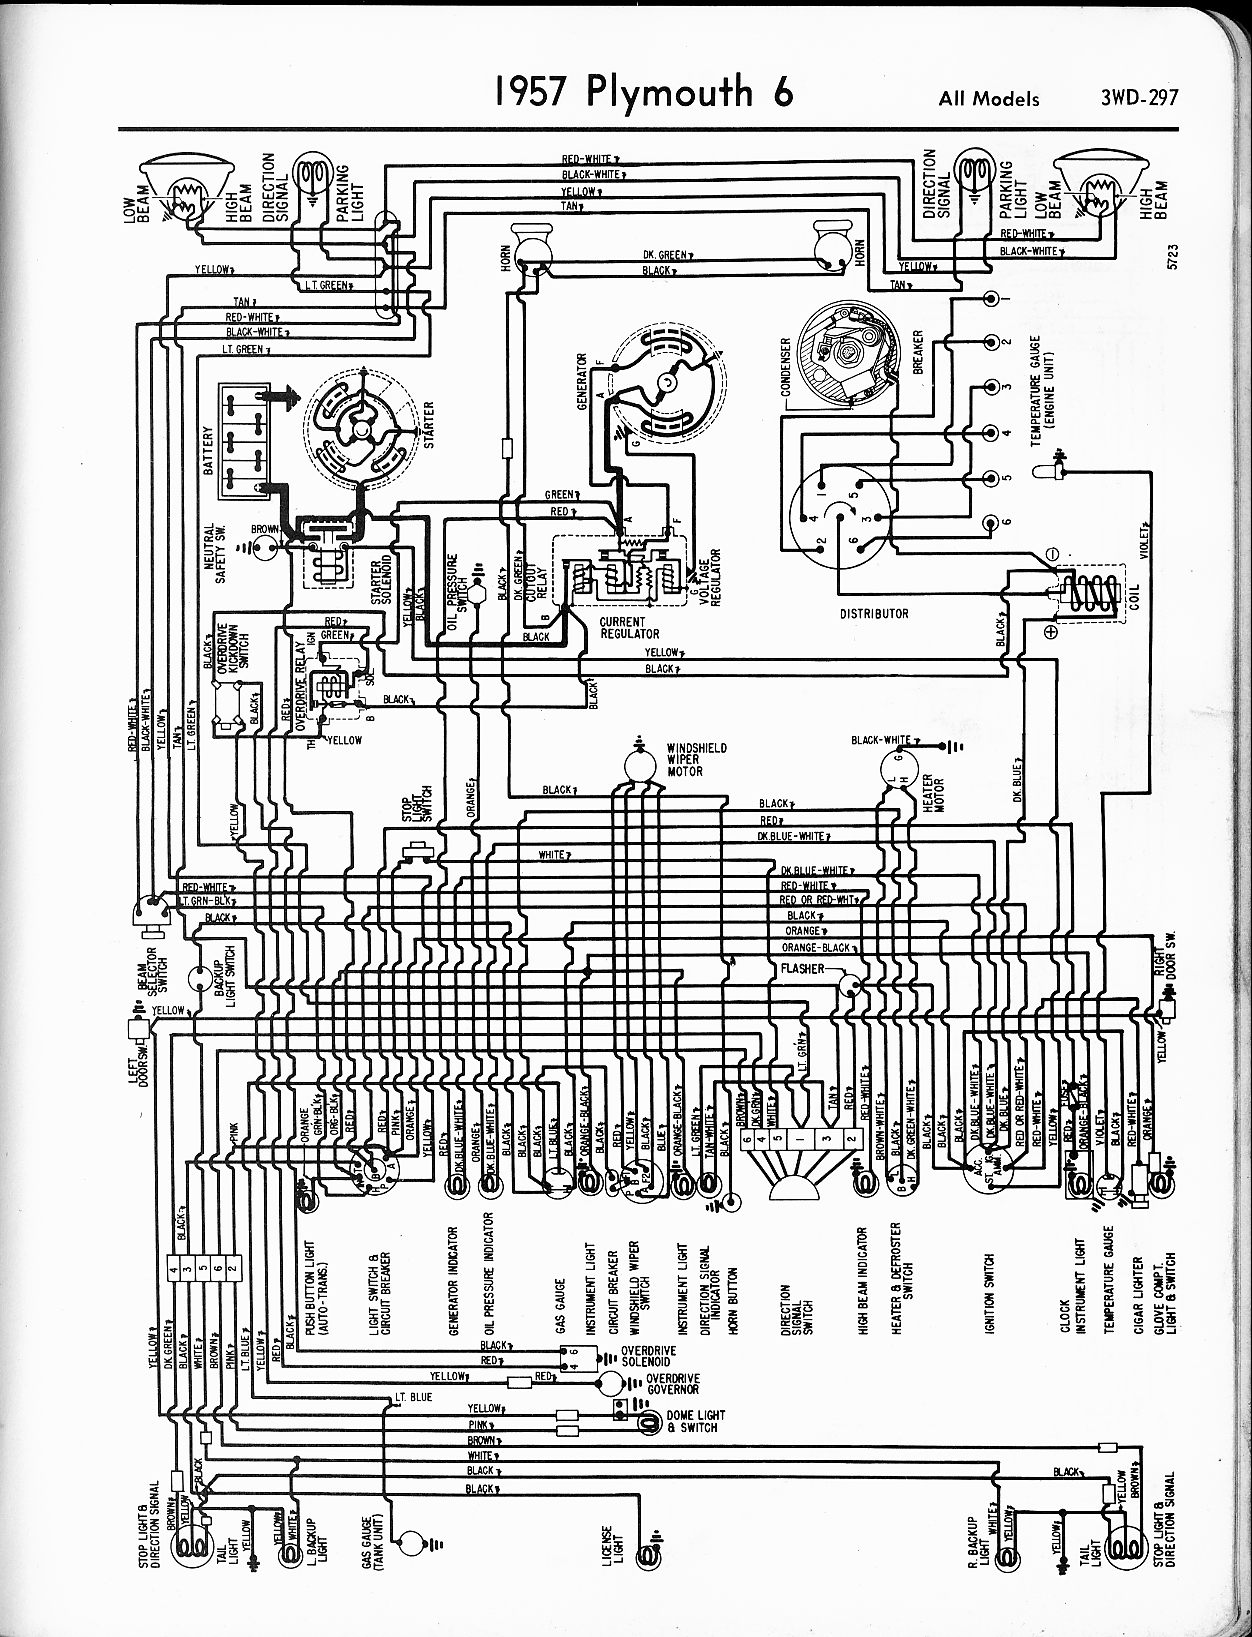 1965 plymouth valiant wiring diagram 1965 wiring diagrams 1956 1965 plymouth wiring the old car manual project